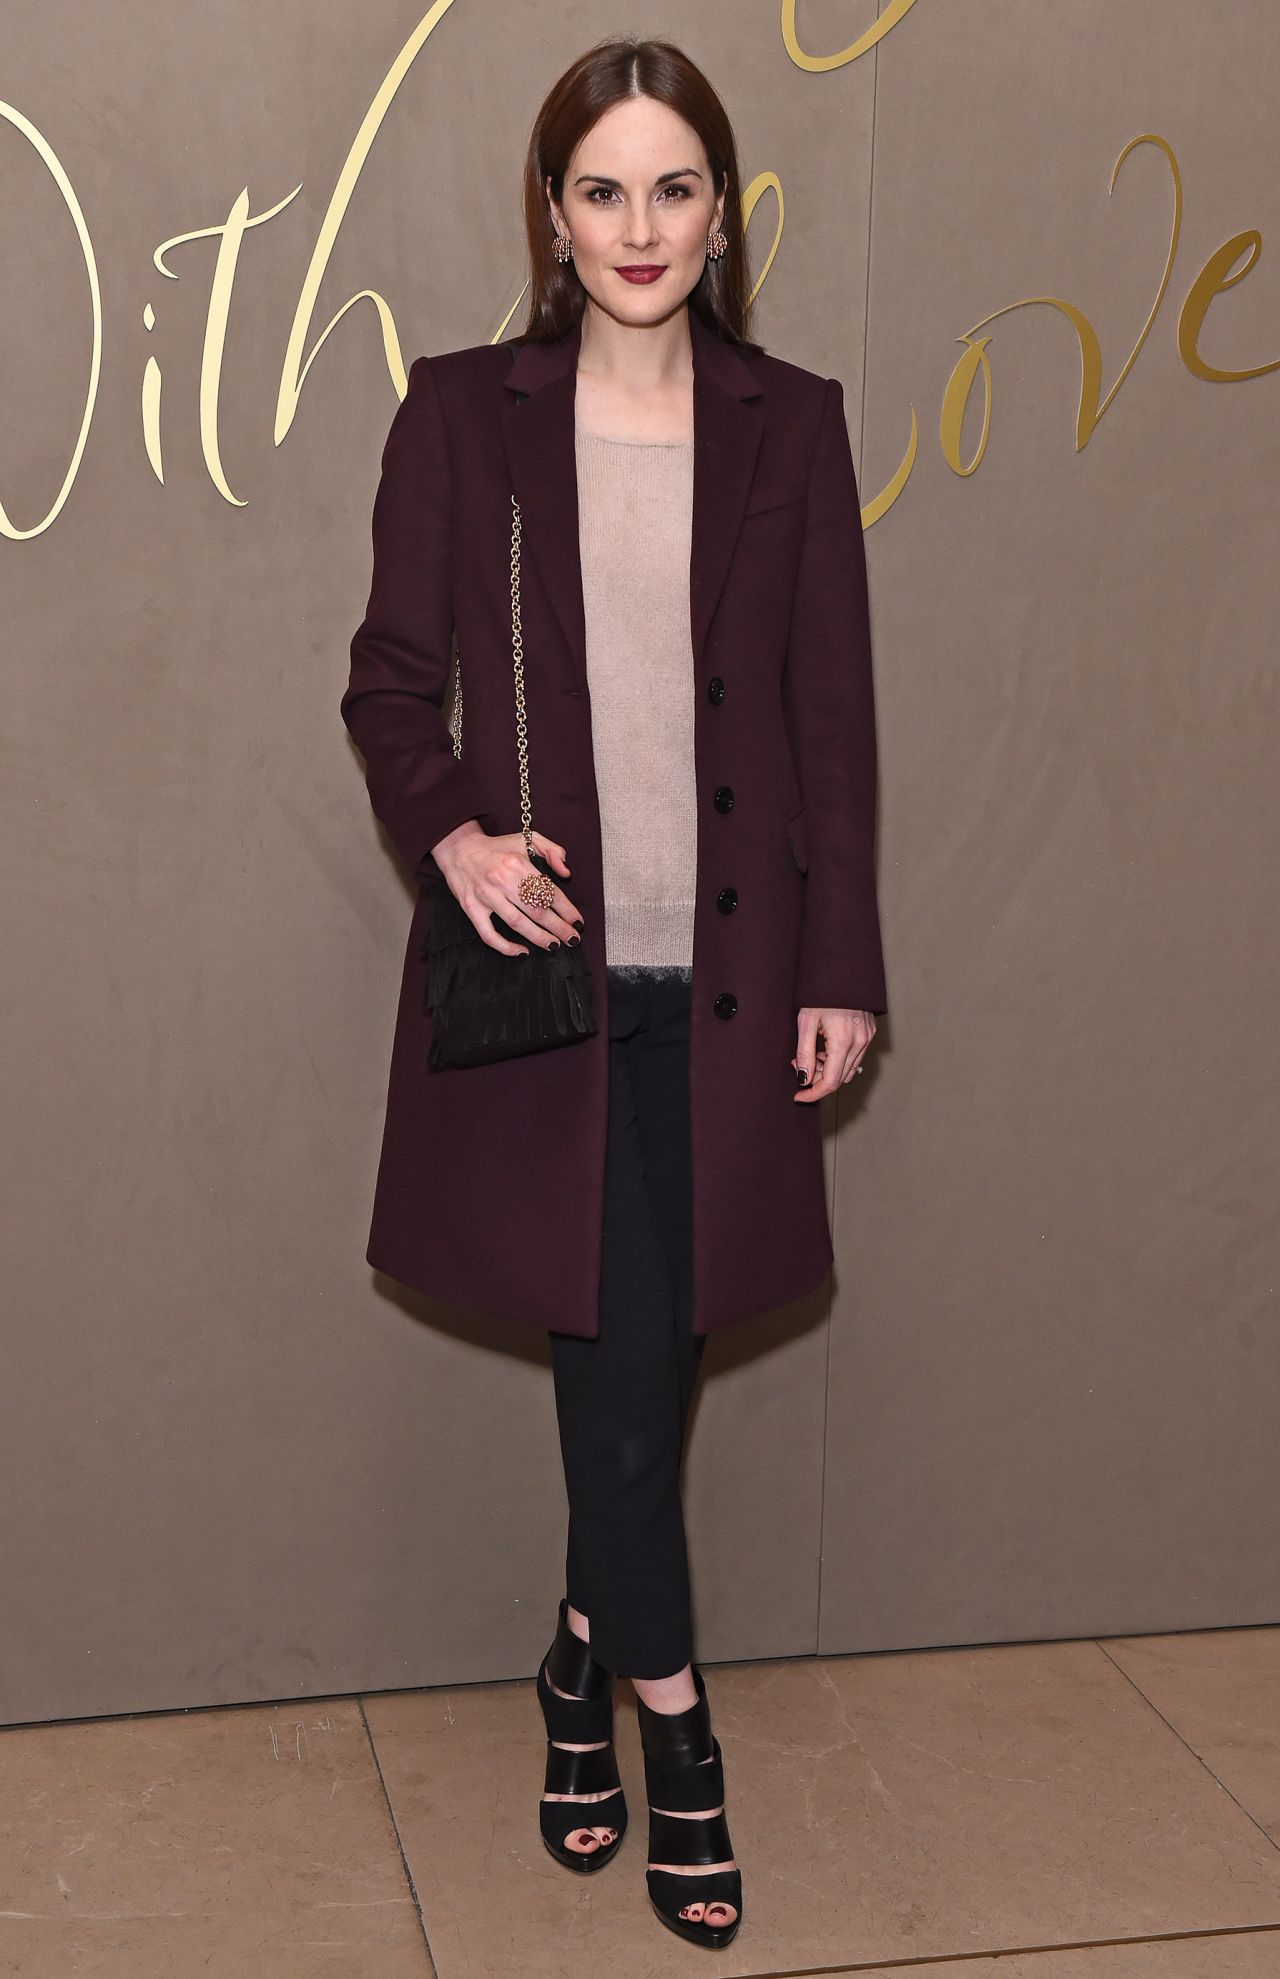 Michelle Dockery Burberry Festive Film Premiere In London